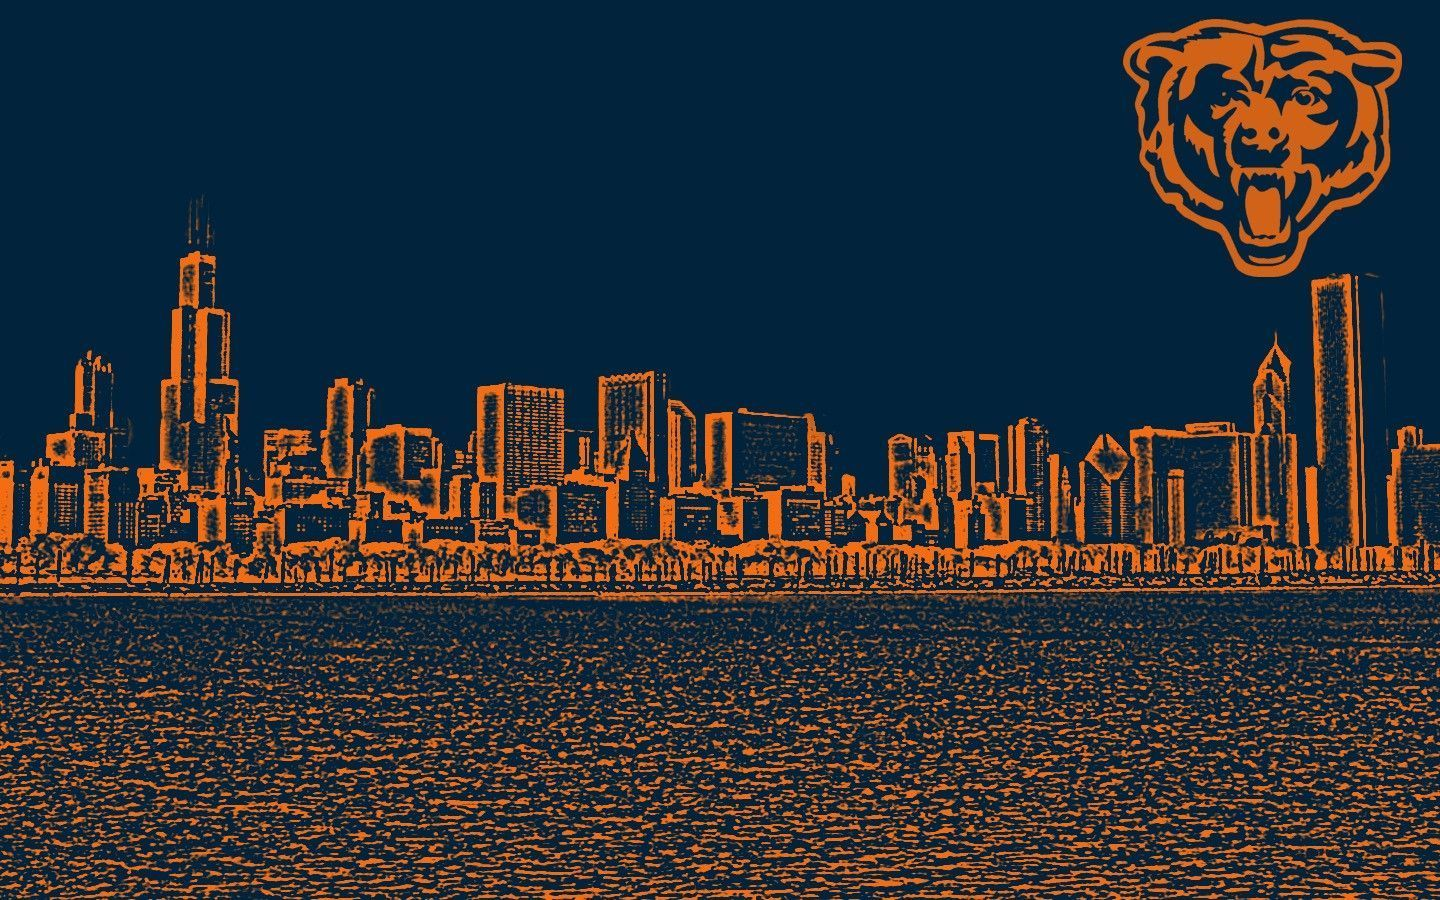 Chicago bears wallpapers 2015 wallpaper cave best games chicago bears wallpapers 2015 wallpaper cave voltagebd Gallery